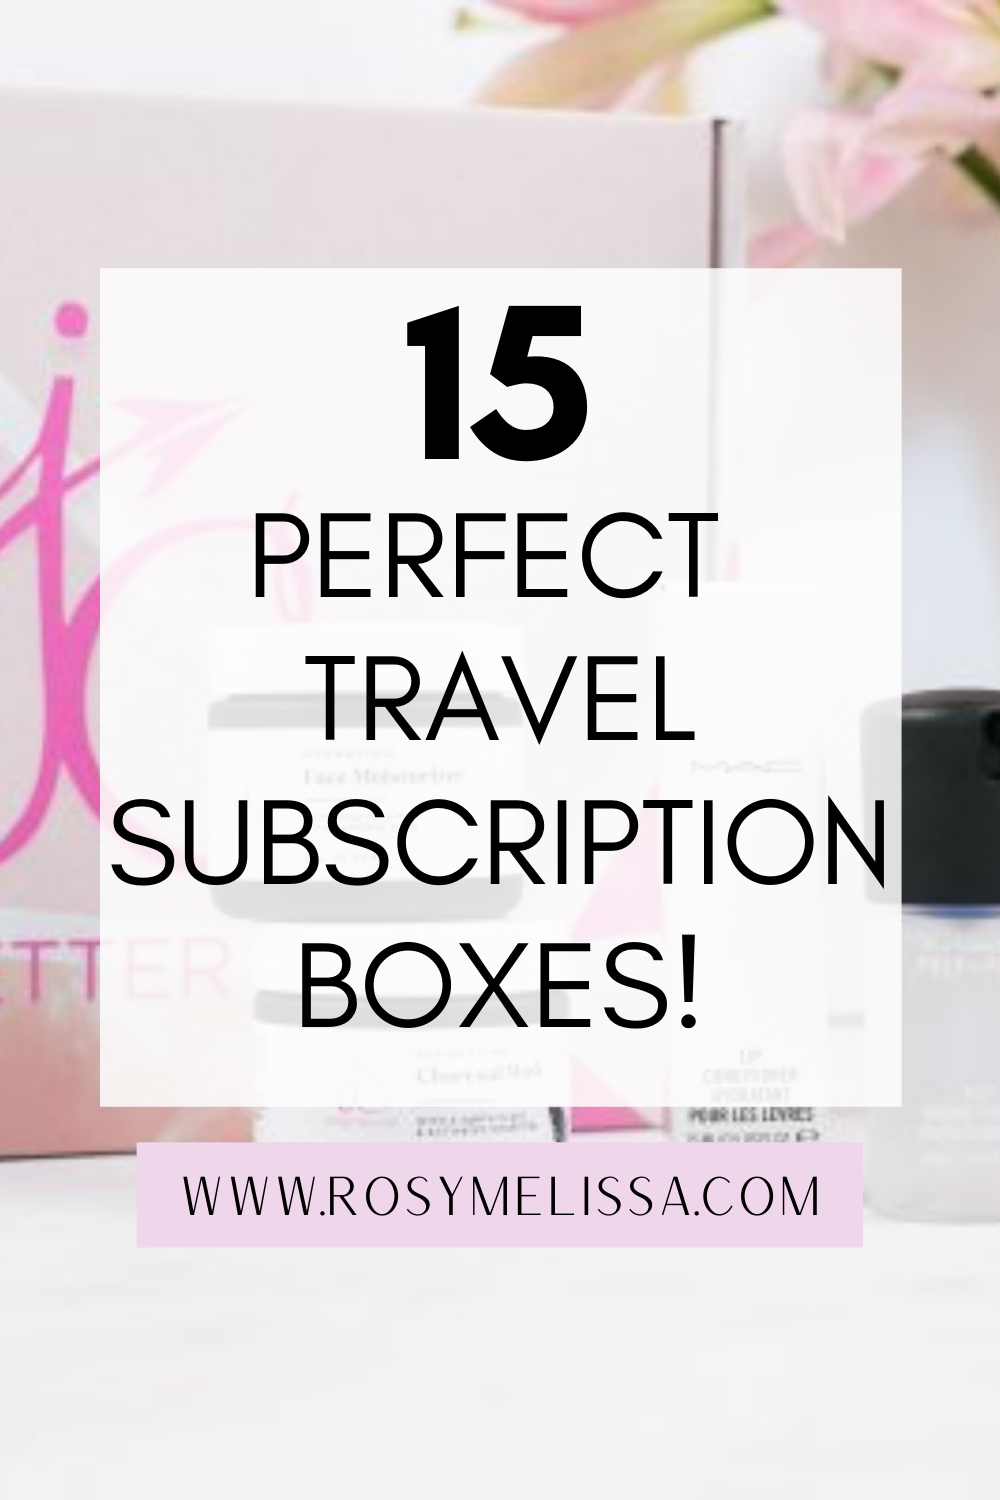 travel subscription boxes, travel gifts, travel ideas for home, wanderlust at home